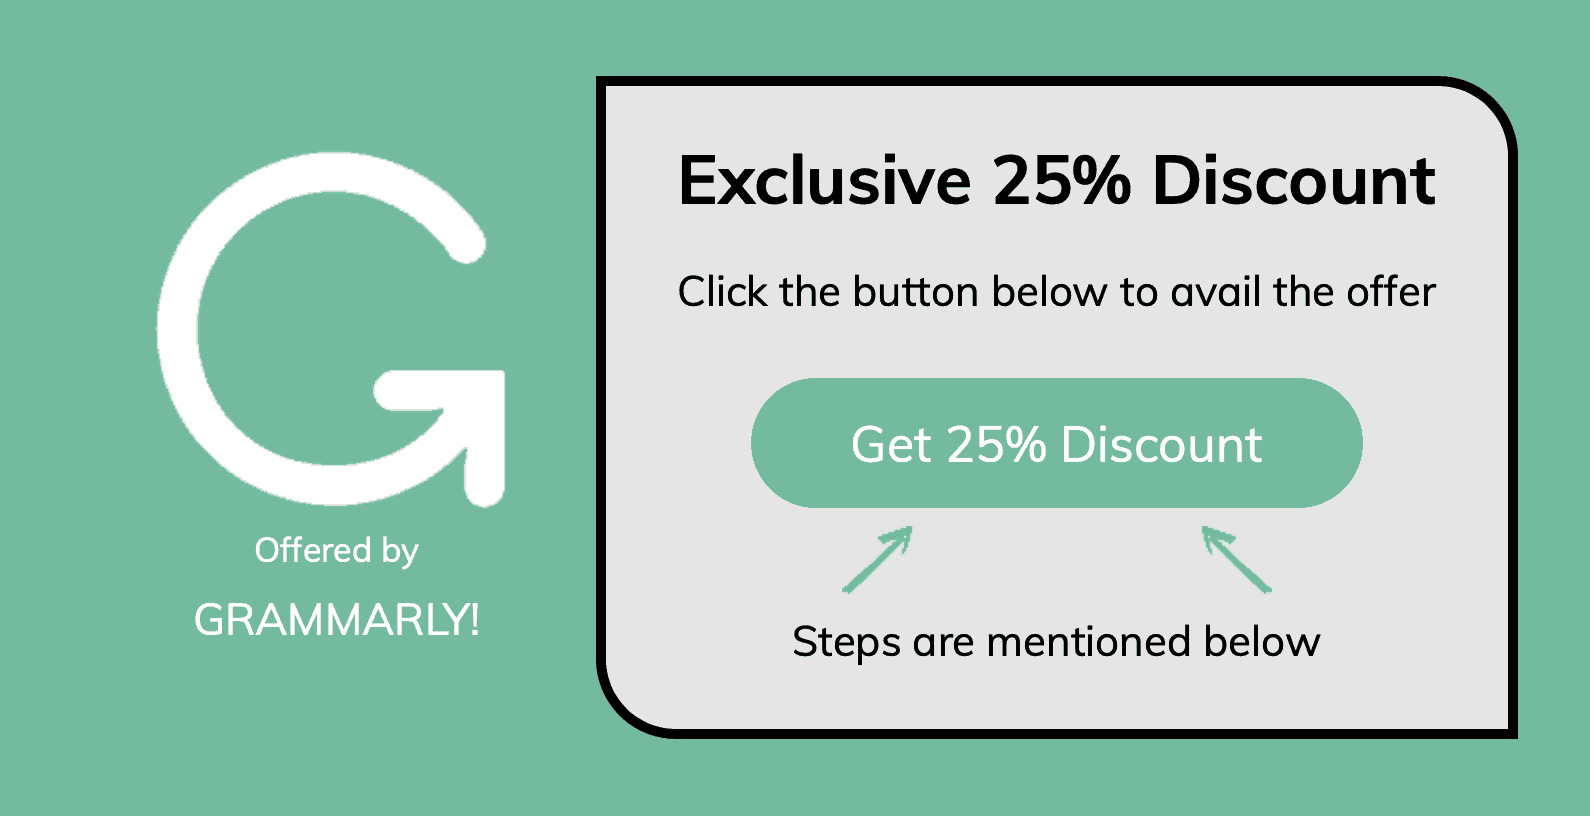 Grammarly 25% discount